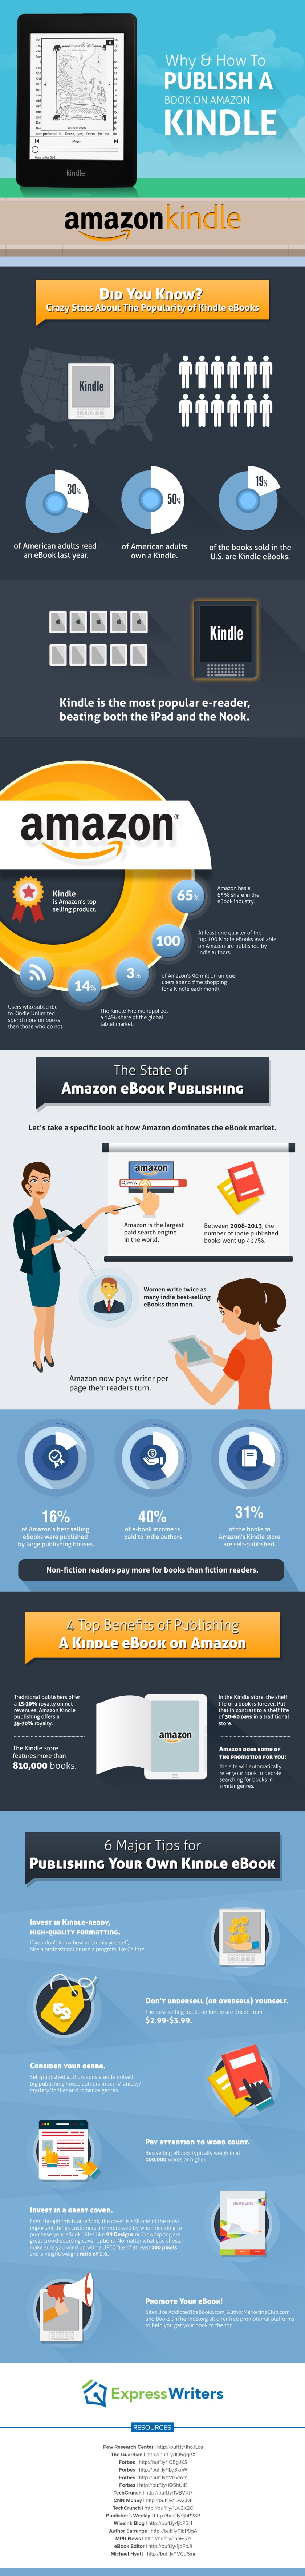 How-to-publish-a-book-on-Amazon-Kindle-infographic